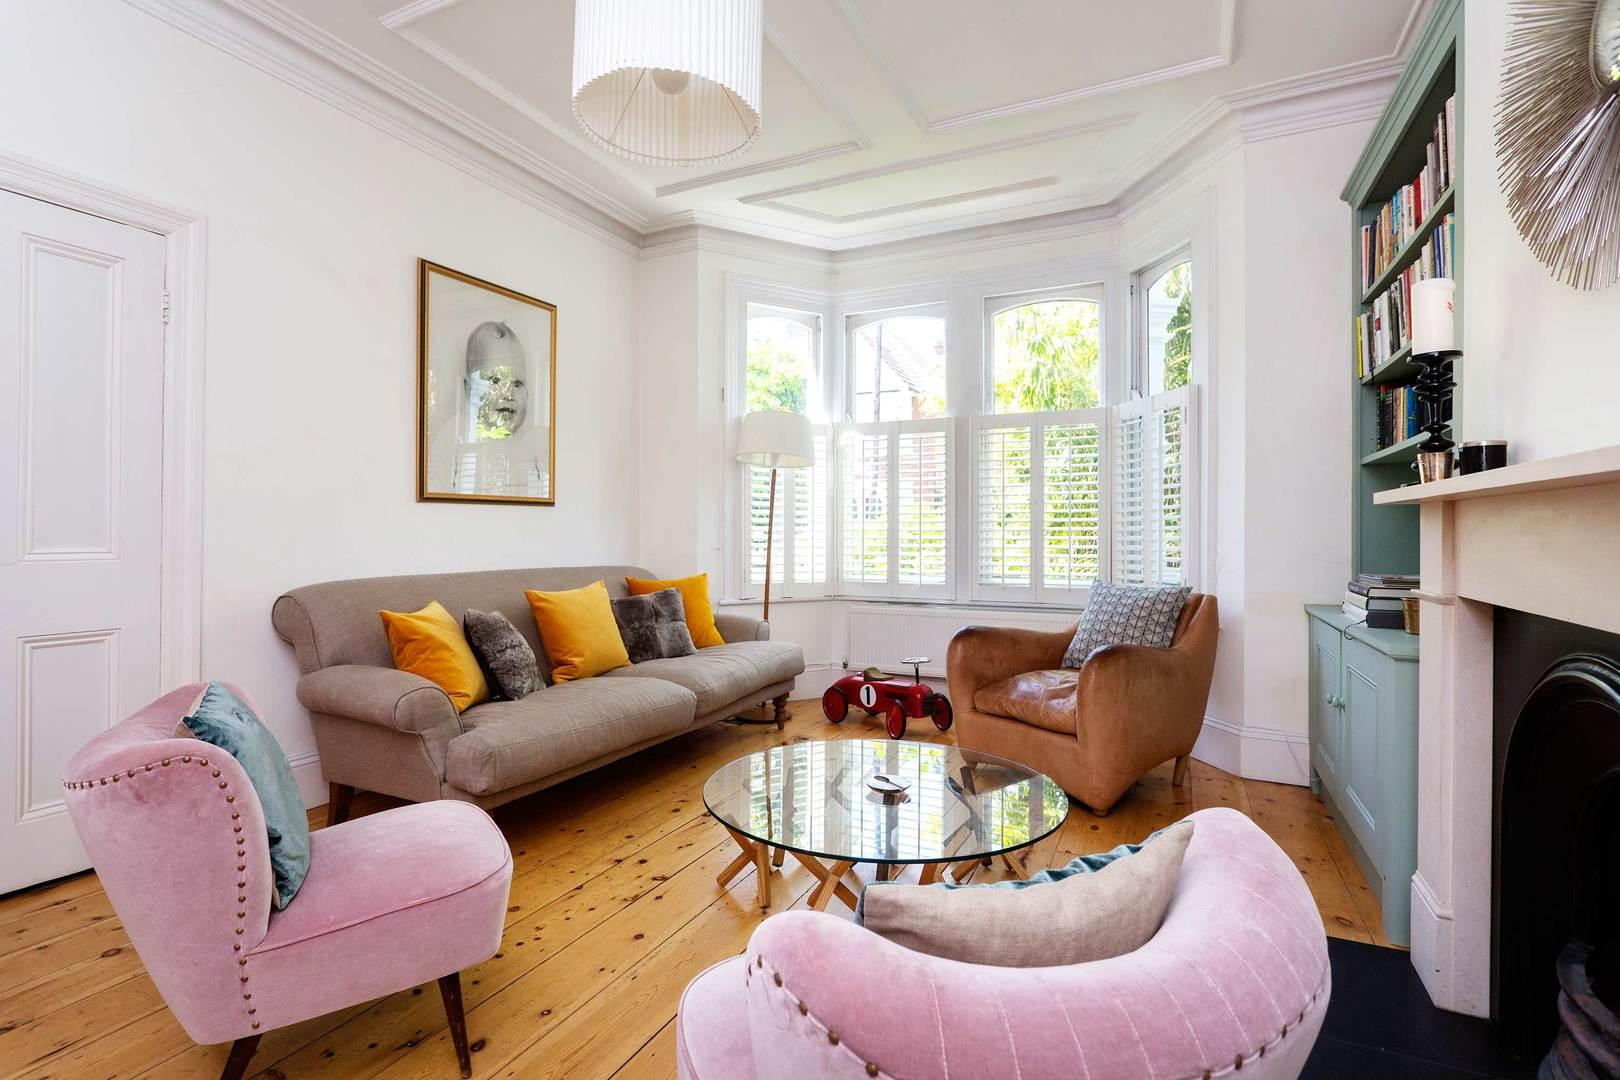 Property Image 1 - Tasteful Shepherd's Bush Home with Private Garden